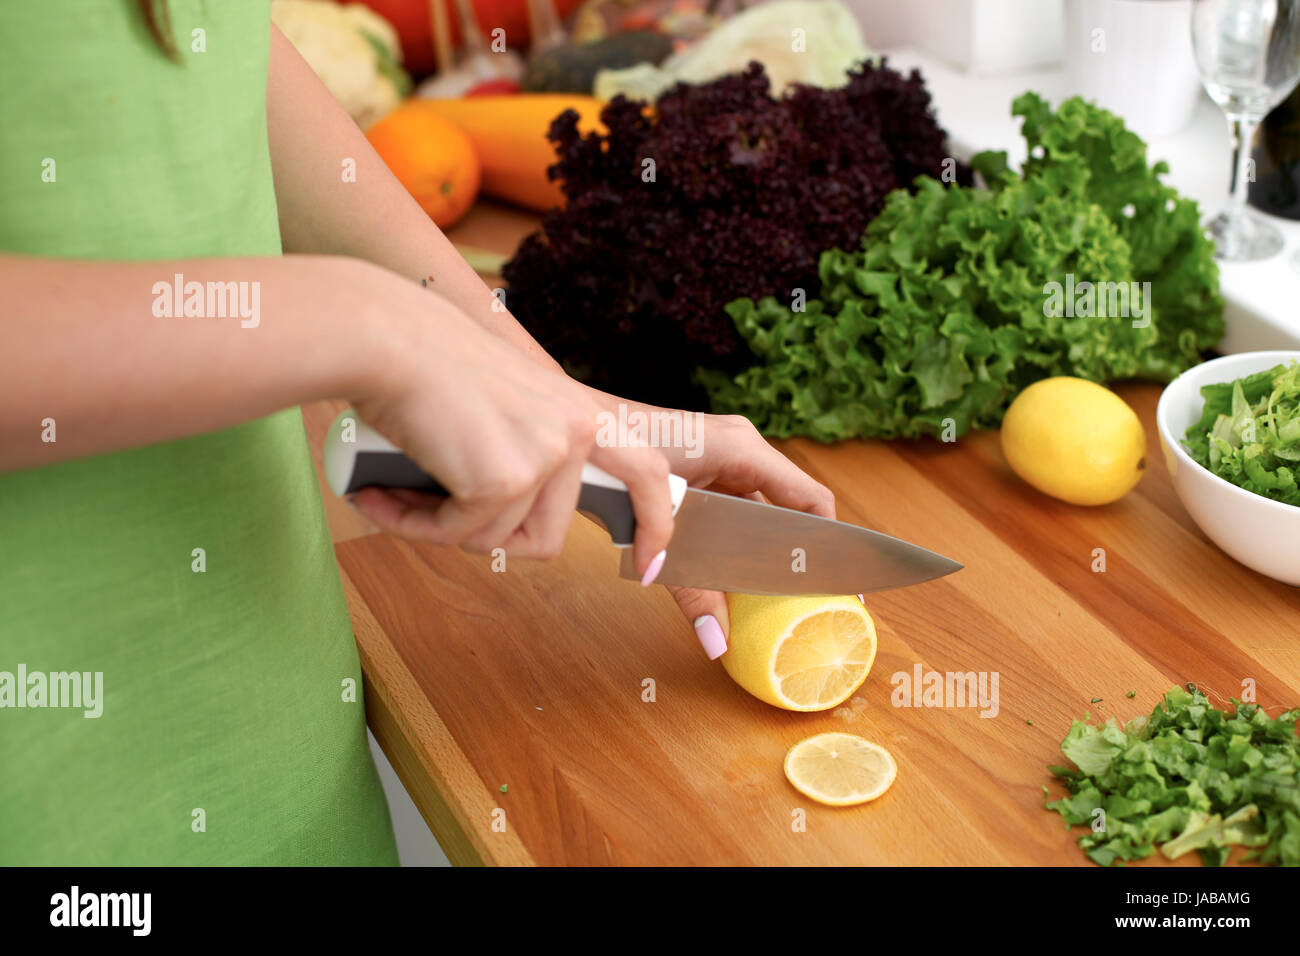 Closeup of woman hands cooking vegetables salad in kitchen. Housewife cuts lemon. Healthy meal and vegetarian concept. - Stock Image